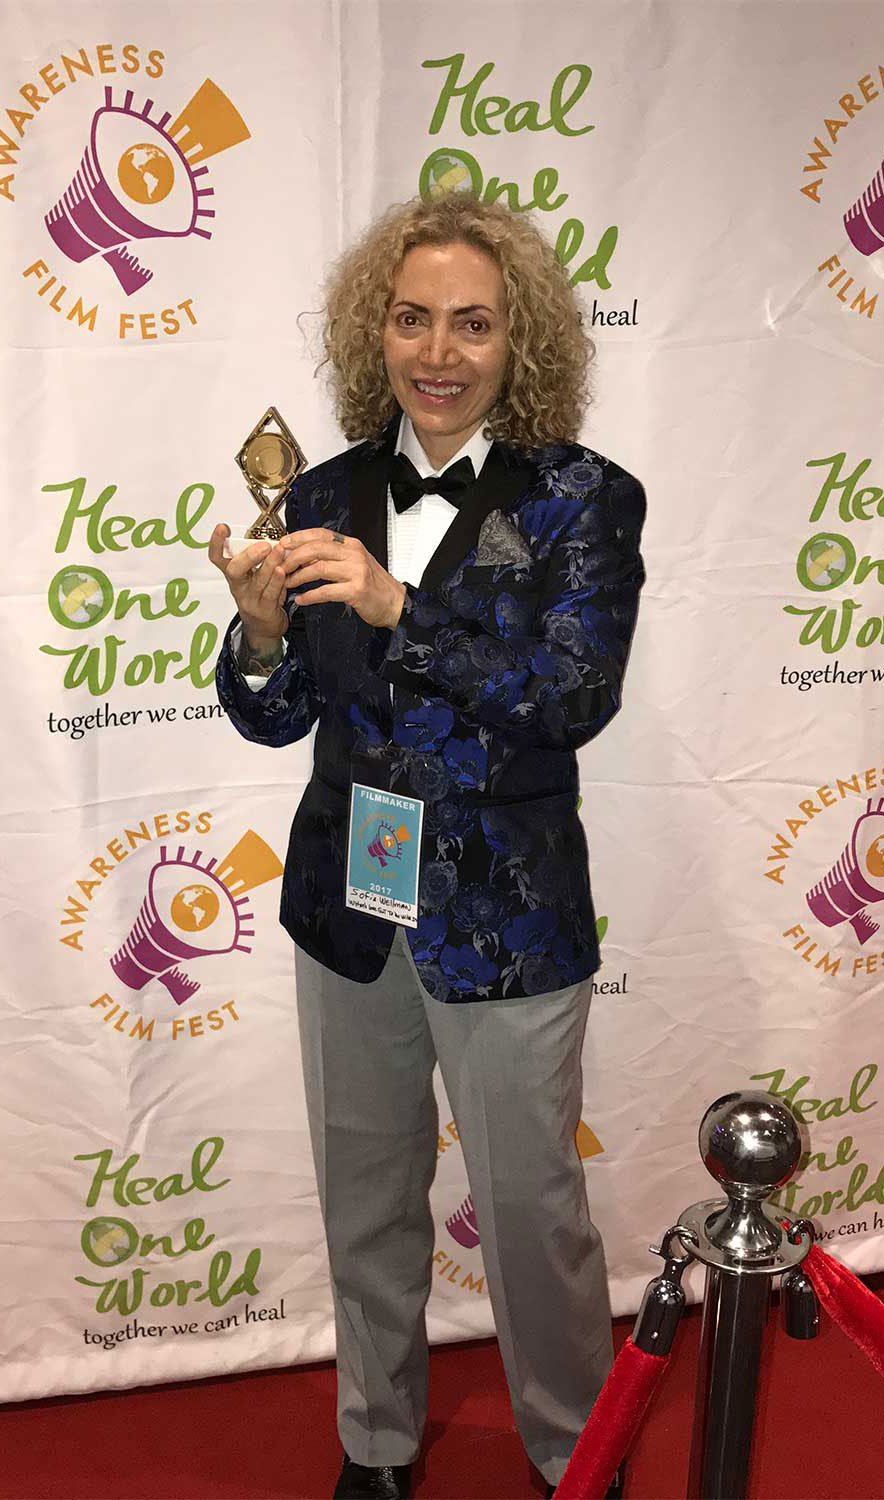 Sofia Wellman - Won Merit Award Of Awareness - The Awareness Film Festival - 2017 - Whats Love Got To Do With It - Film by Sofia Wellman